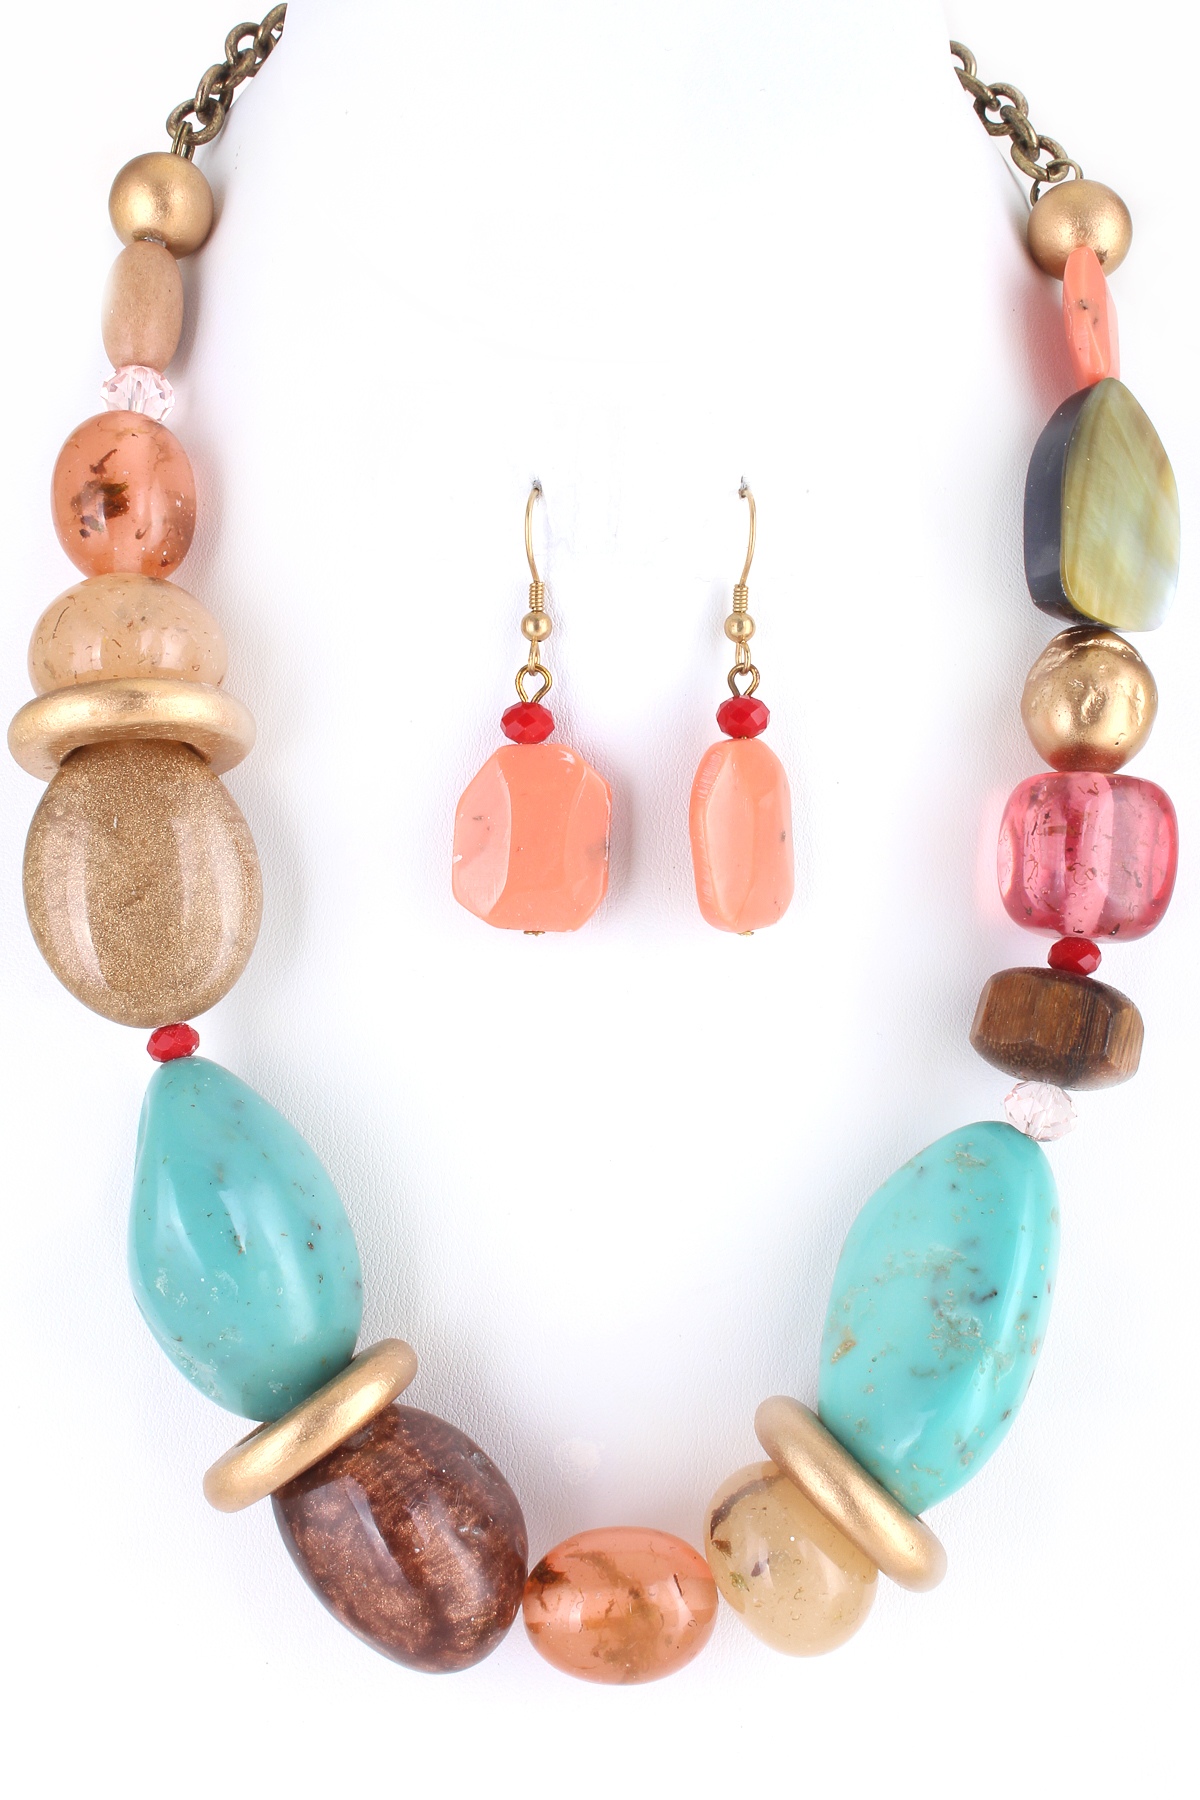 Marble Stone Jewelry : Assorted natural stone necklace necklaces